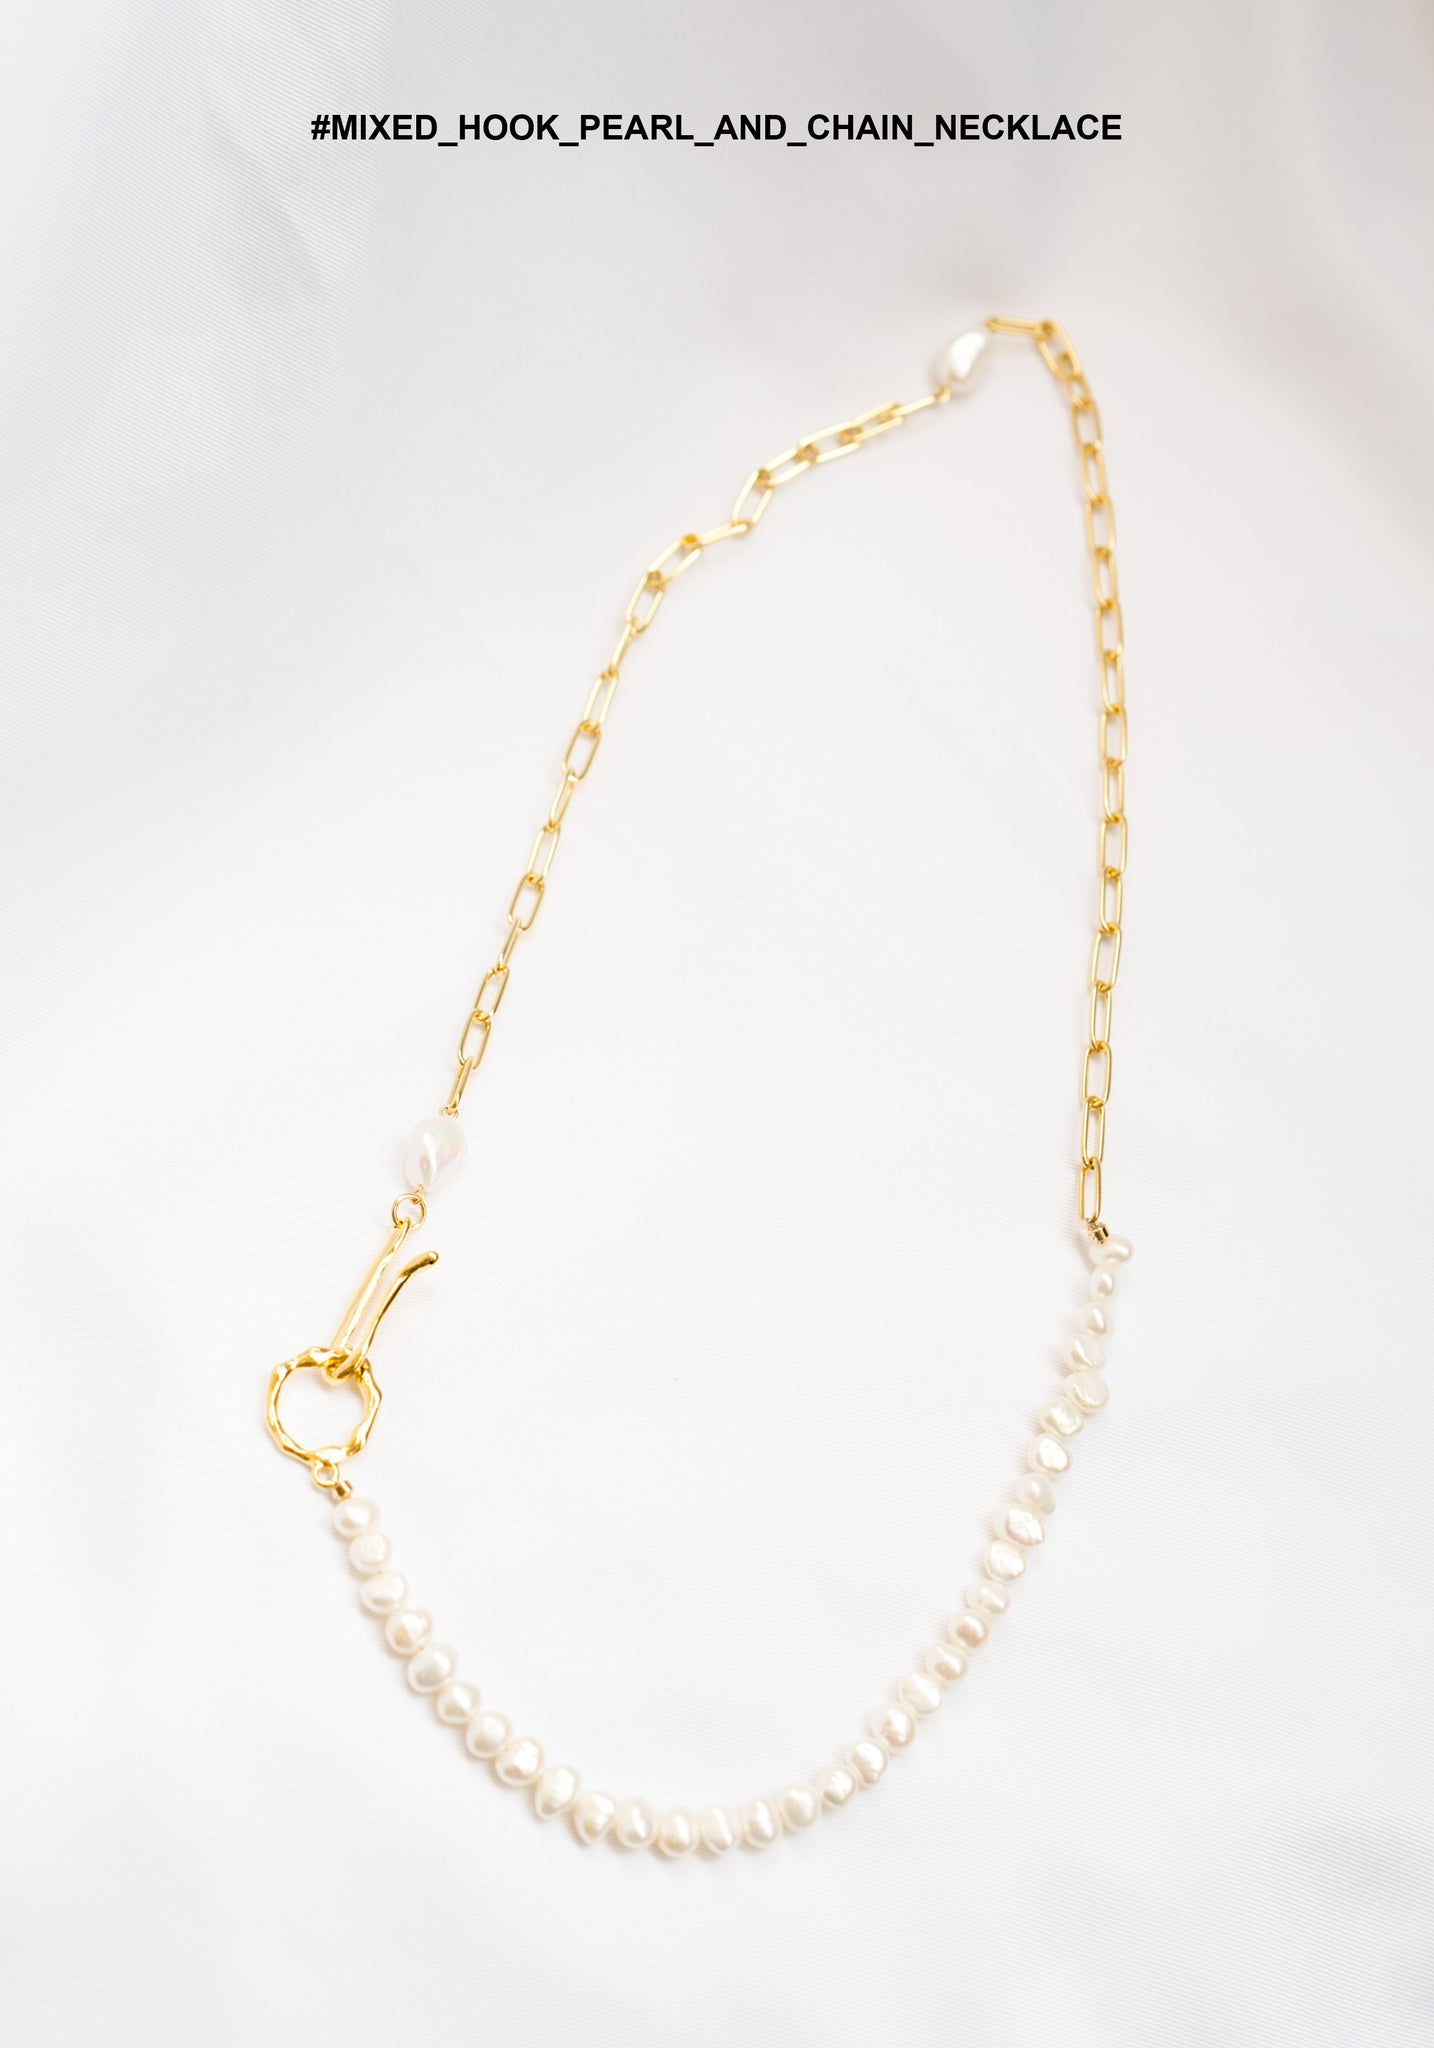 Mixed Hook Pearl And Chain Necklace - whoami